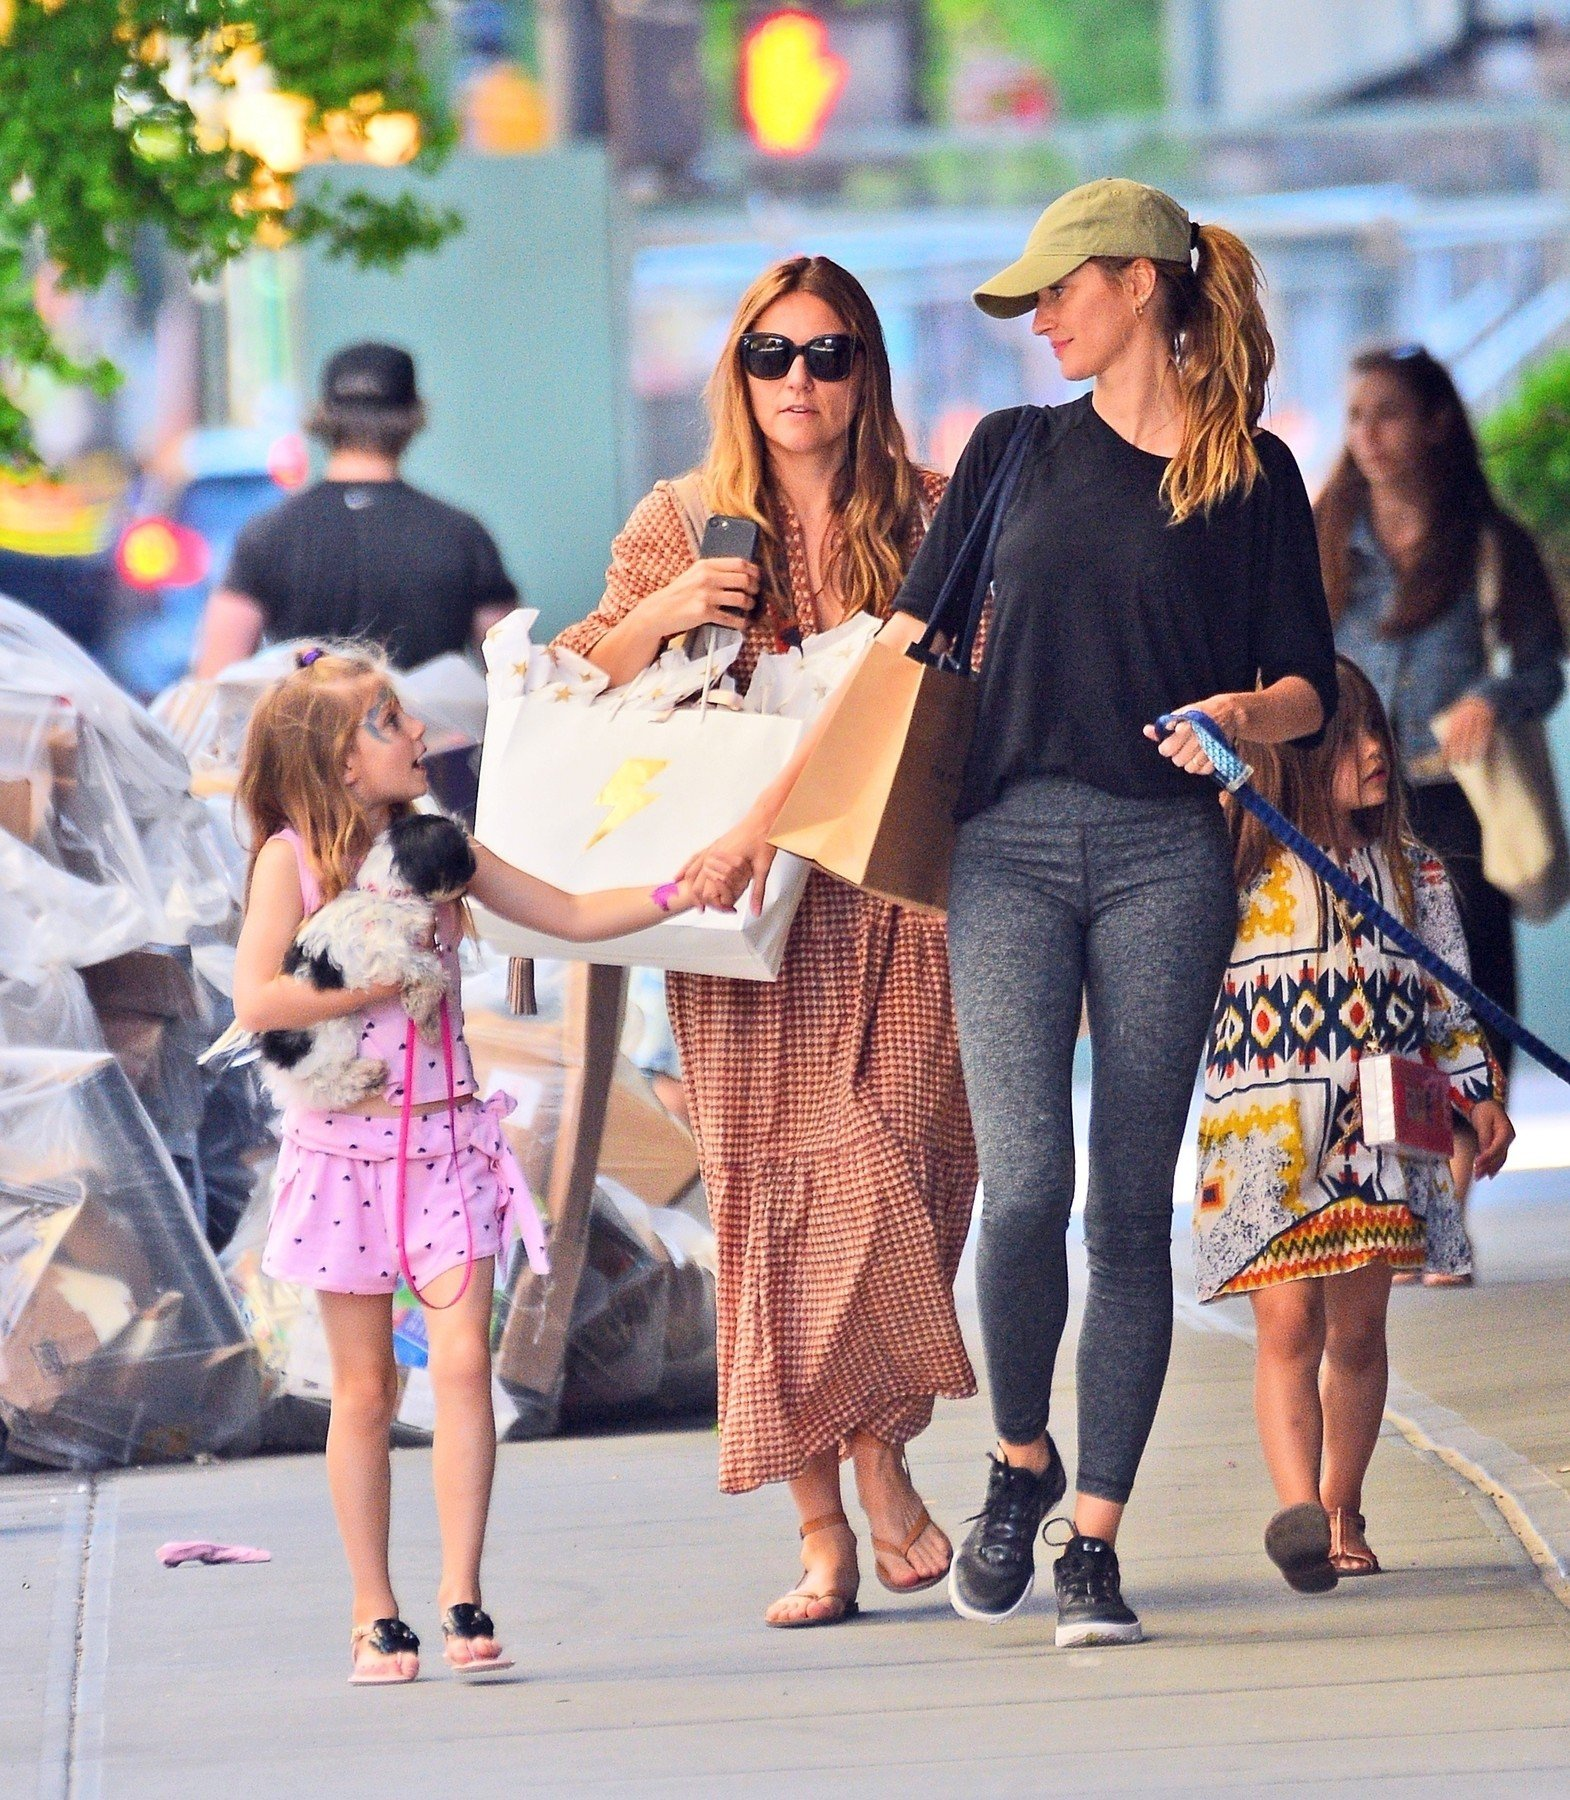 New York, NY  - *EXCLUSIVE* Gisele Bundchen takes her daughter Vivian Lake Brady for a walk with her dogs on the pier in NYC.  Pictured: Gisele Bundchen  BACKGRID USA 18 MAY 2019, Image: 434563540, License: Rights-managed, Restrictions: , Model Release: no, Credit line: Profimedia, Backgrid USA